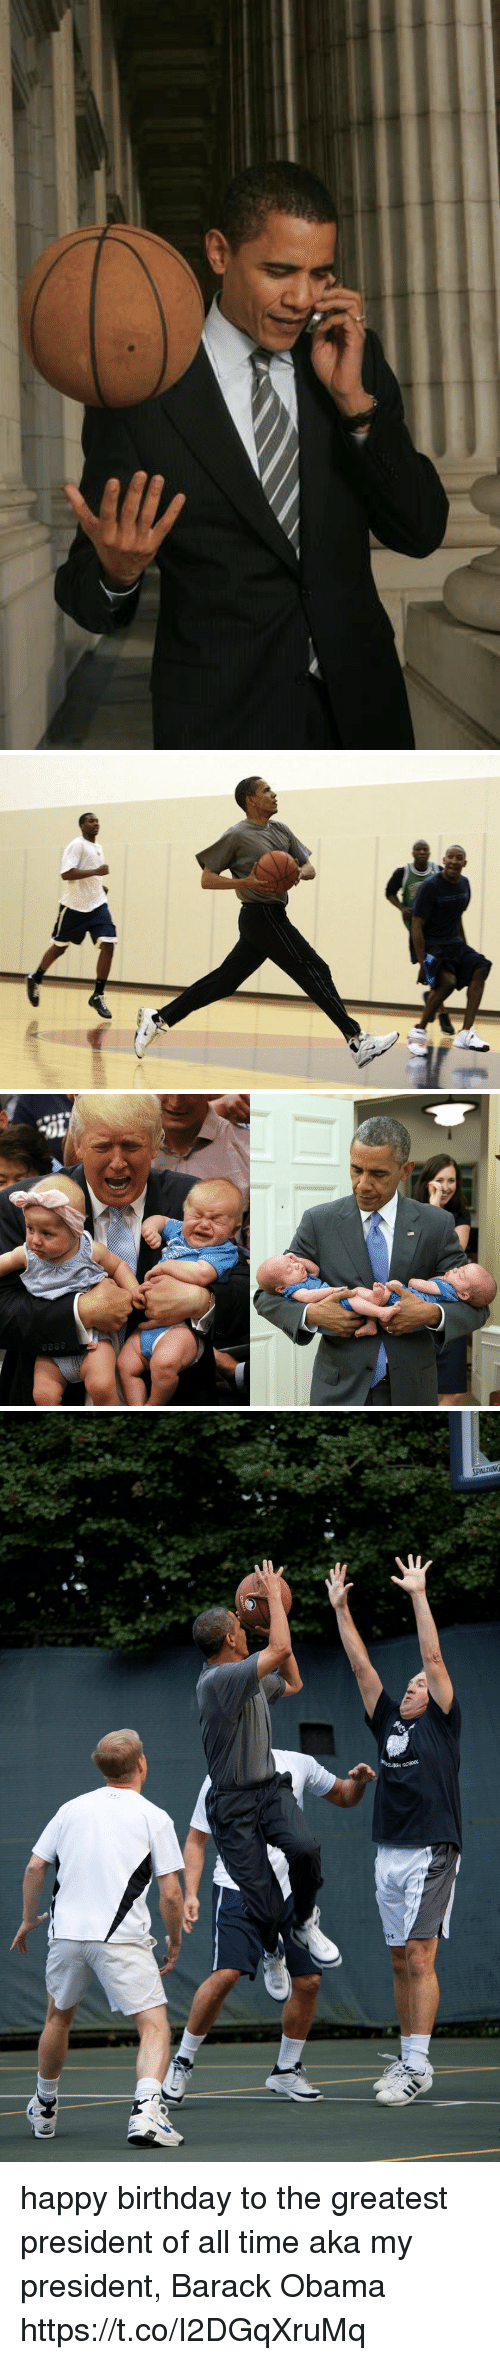 Birthday, Obama, and Happy Birthday: SPALDING happy birthday to the greatest president of all time aka my president, Barack Obama https://t.co/I2DGqXruMq